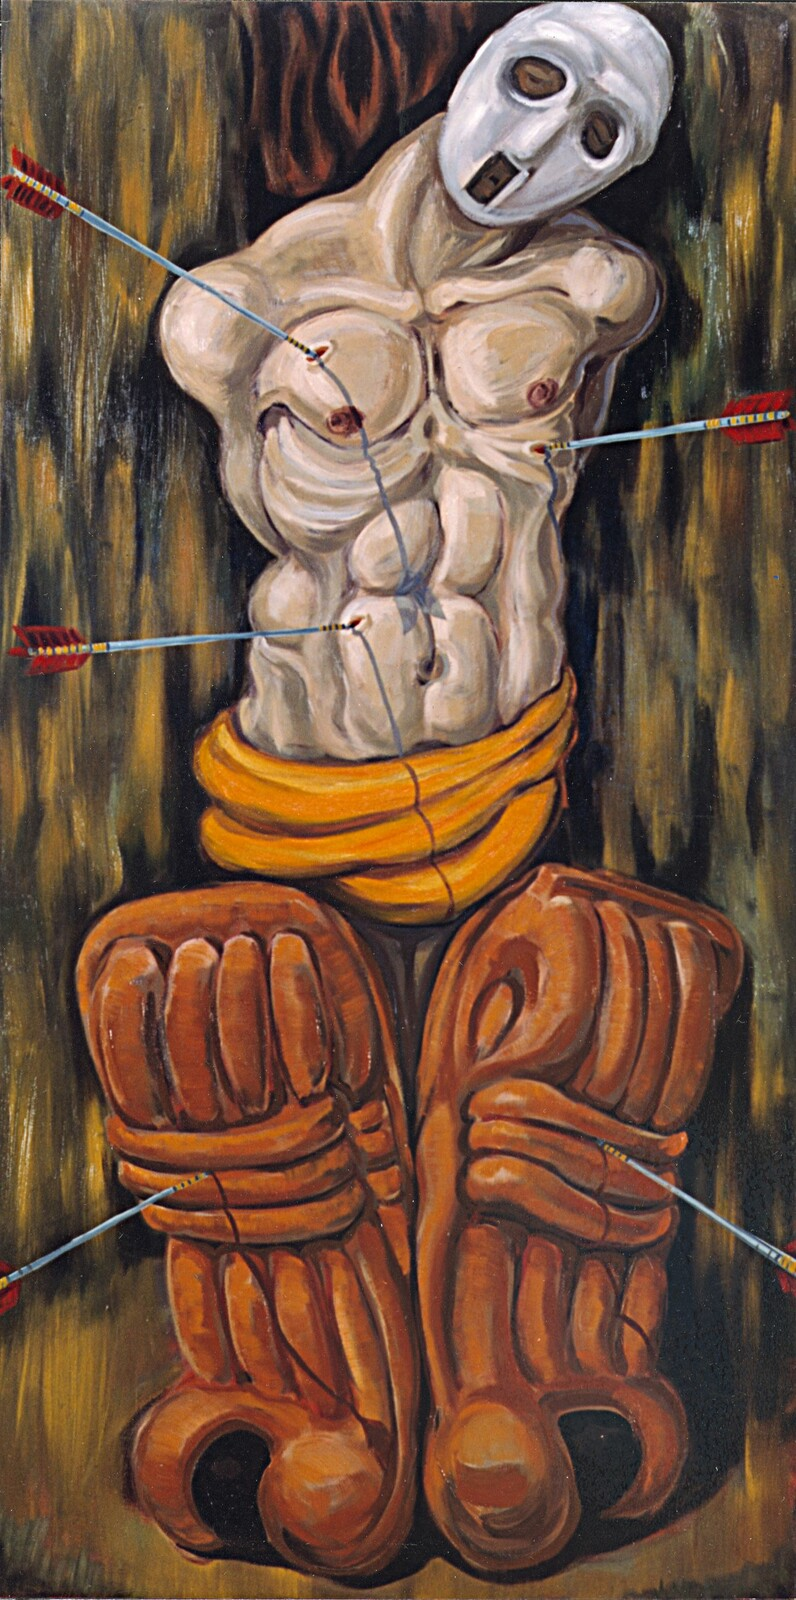 ST SEBASTIAN oil on canvas 6X3 feet, 1992, private collection.